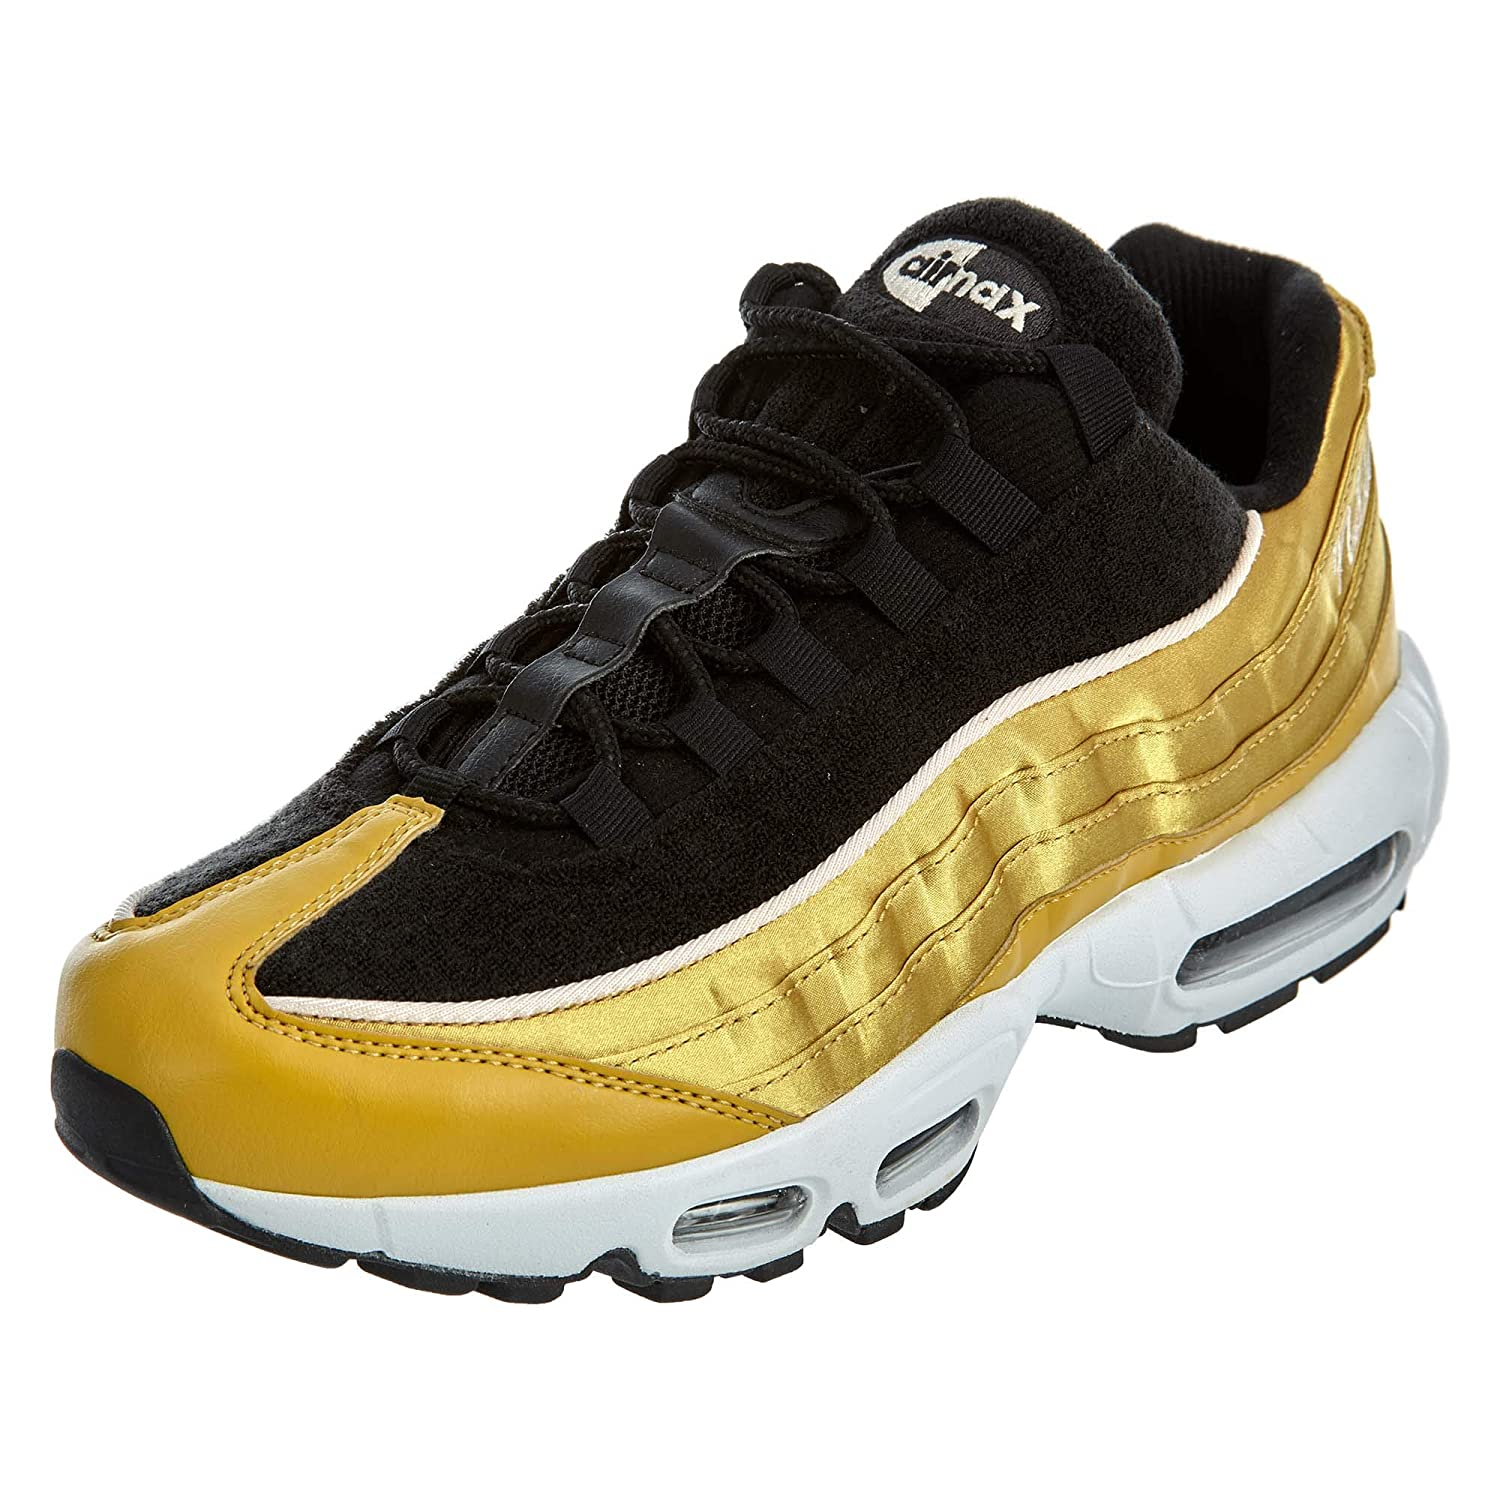 MultiCouleure (Wheat or Wheat or or or noir Guava Ice 001) Nike WMNS Air Max 95 LX, paniers Basses Femme 003